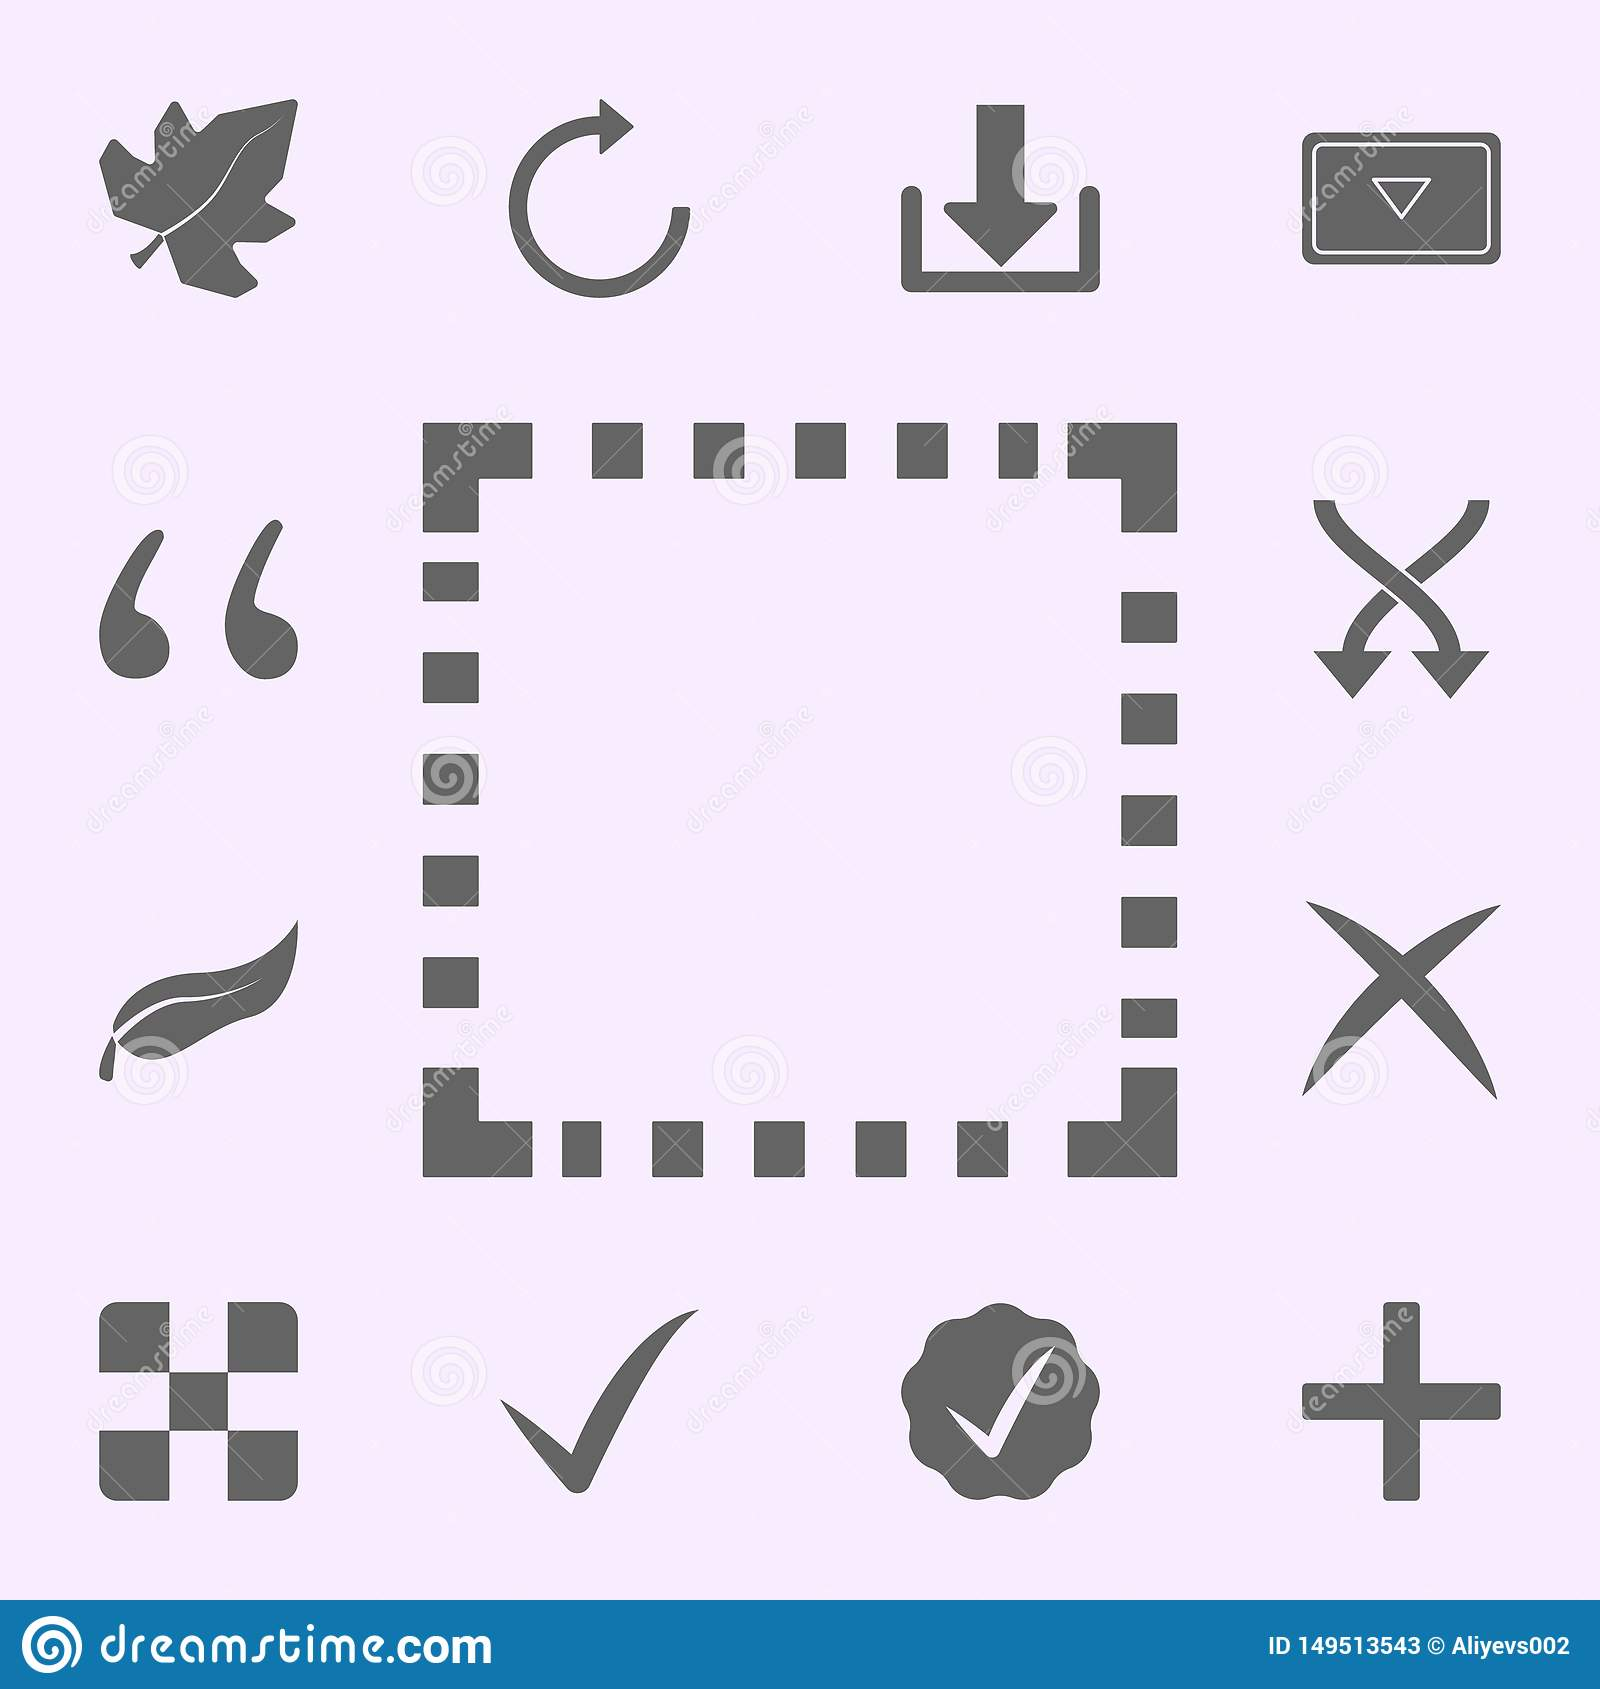 Square Icons Stock Illustrations – 49,876 Square Icons Stock